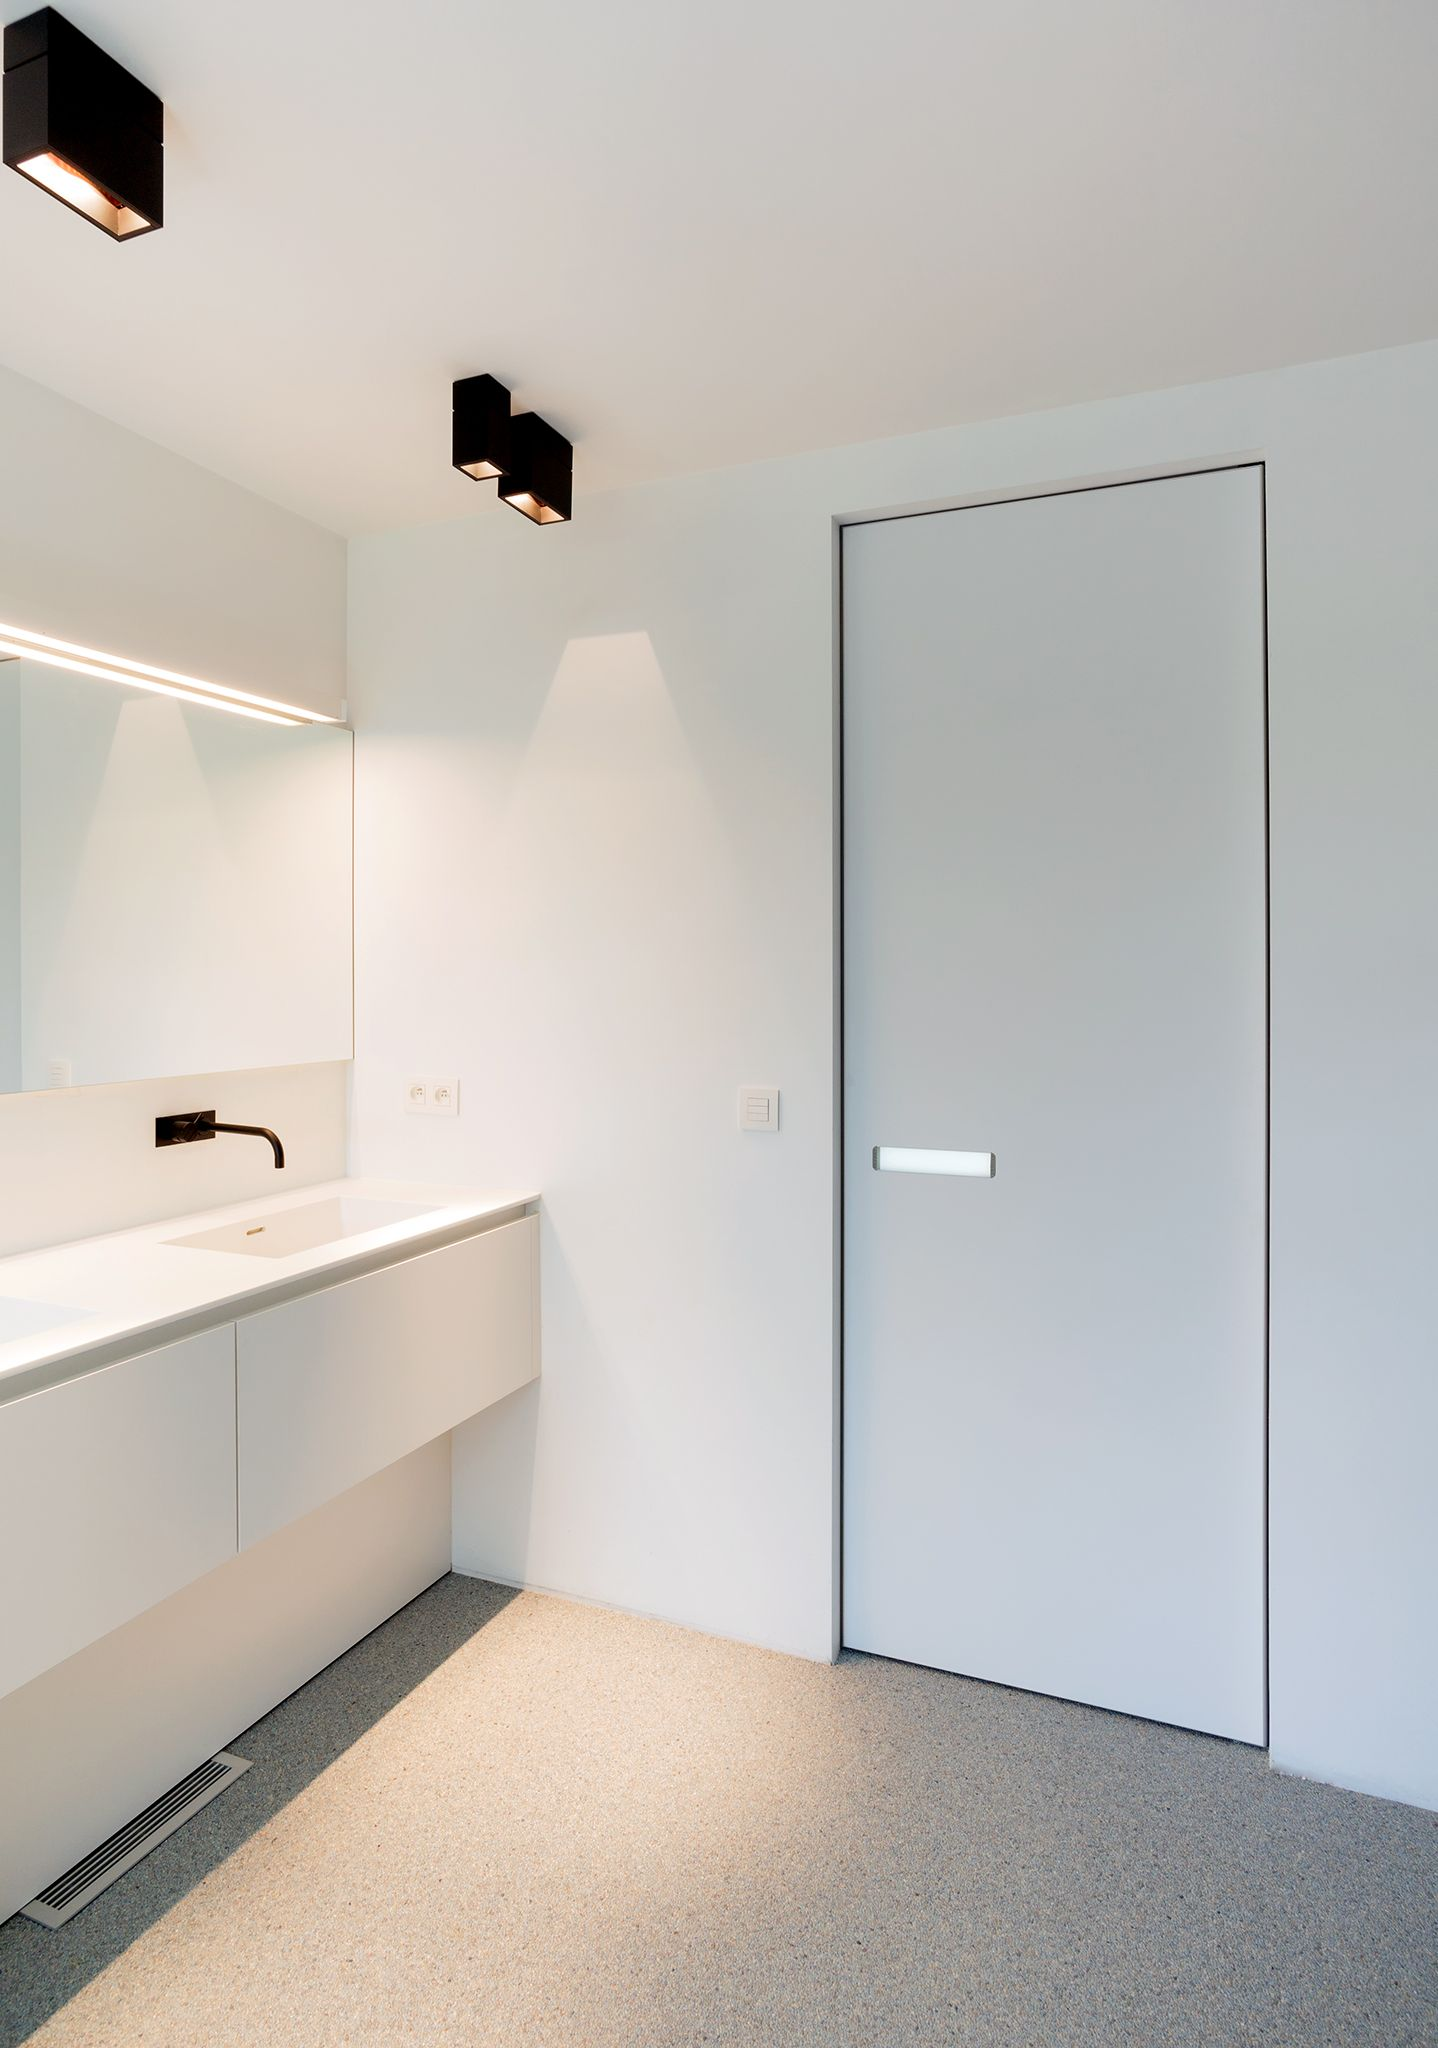 Le Meilleur White Interior Door With Invisible Door Frame And A Built Ce Mois Ci